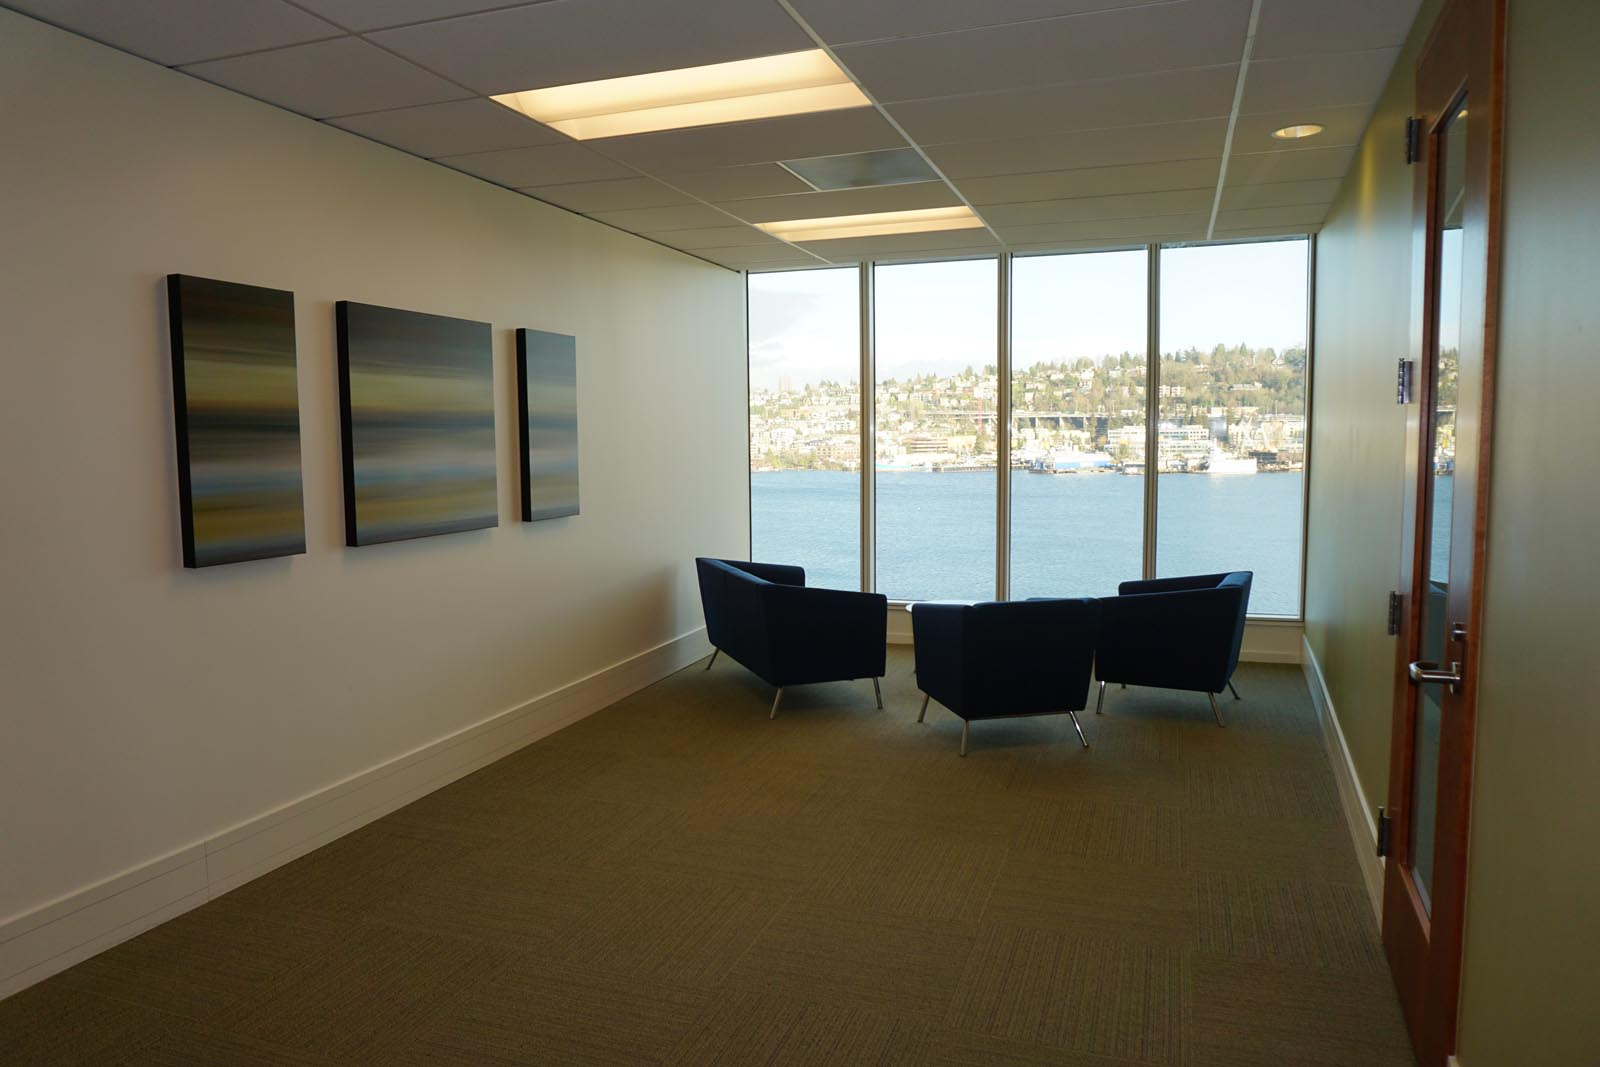 Lake Union Bldg Lobby and waterfront view